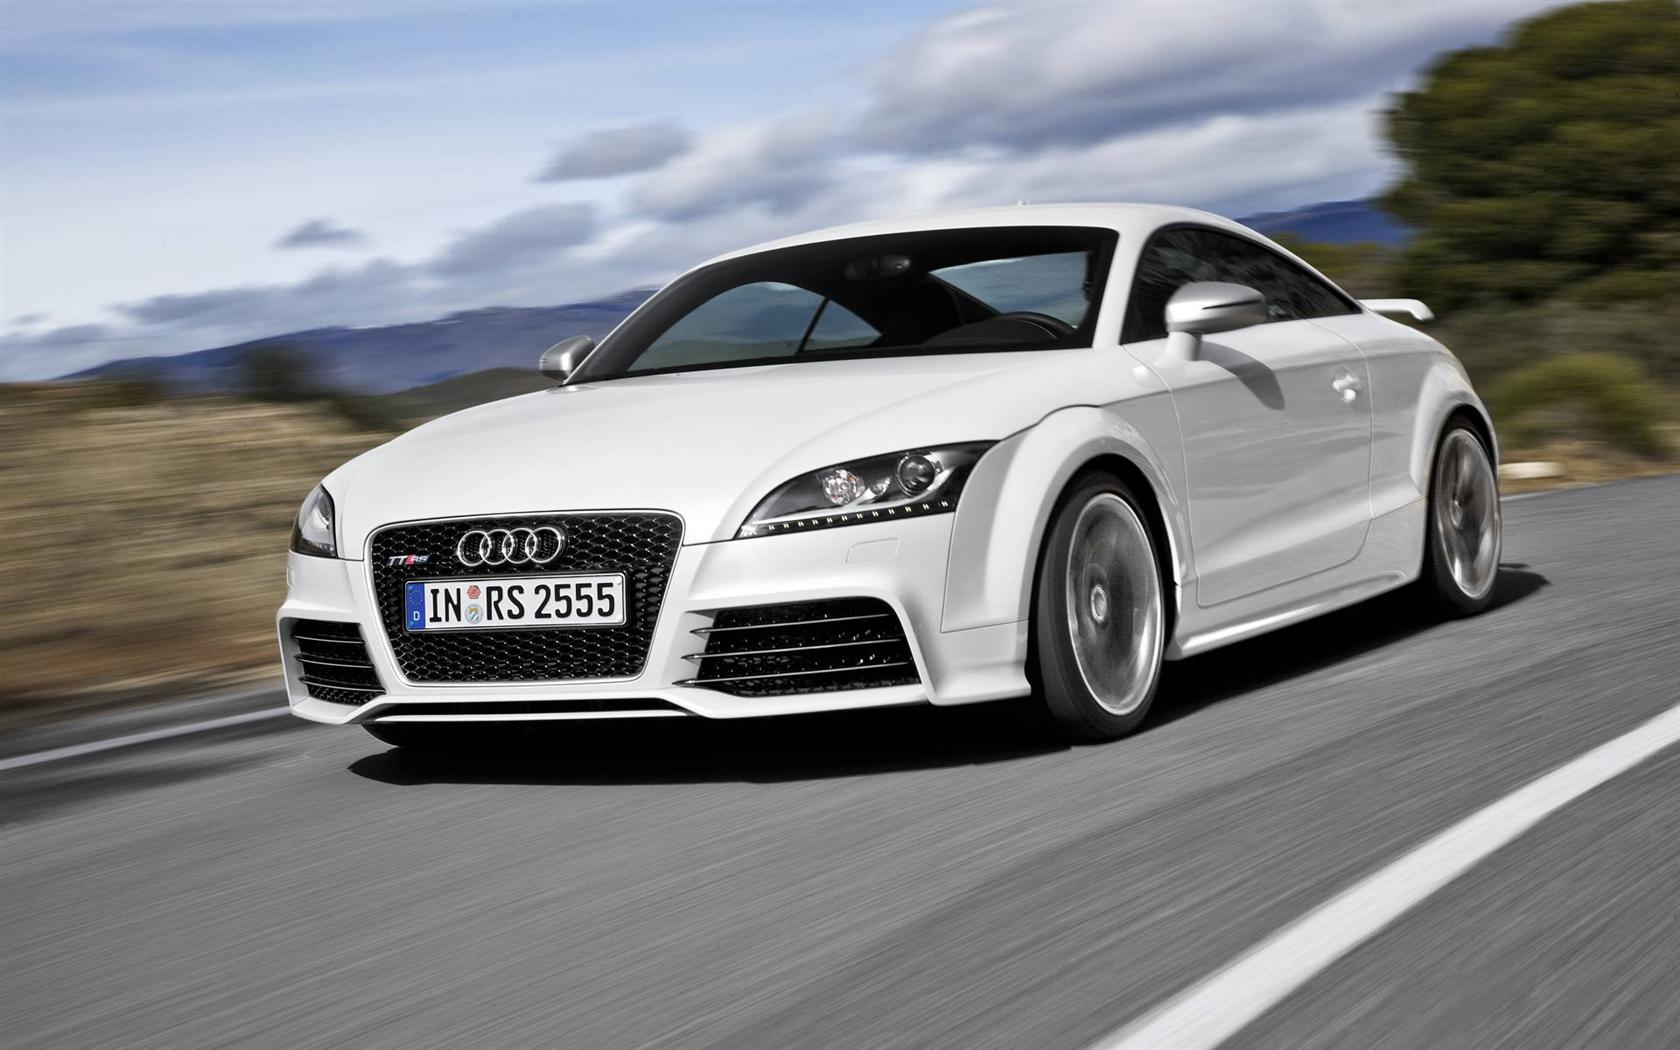 2012 audi tt rs images photo 2012 audi tt rs coupe image 09. Black Bedroom Furniture Sets. Home Design Ideas